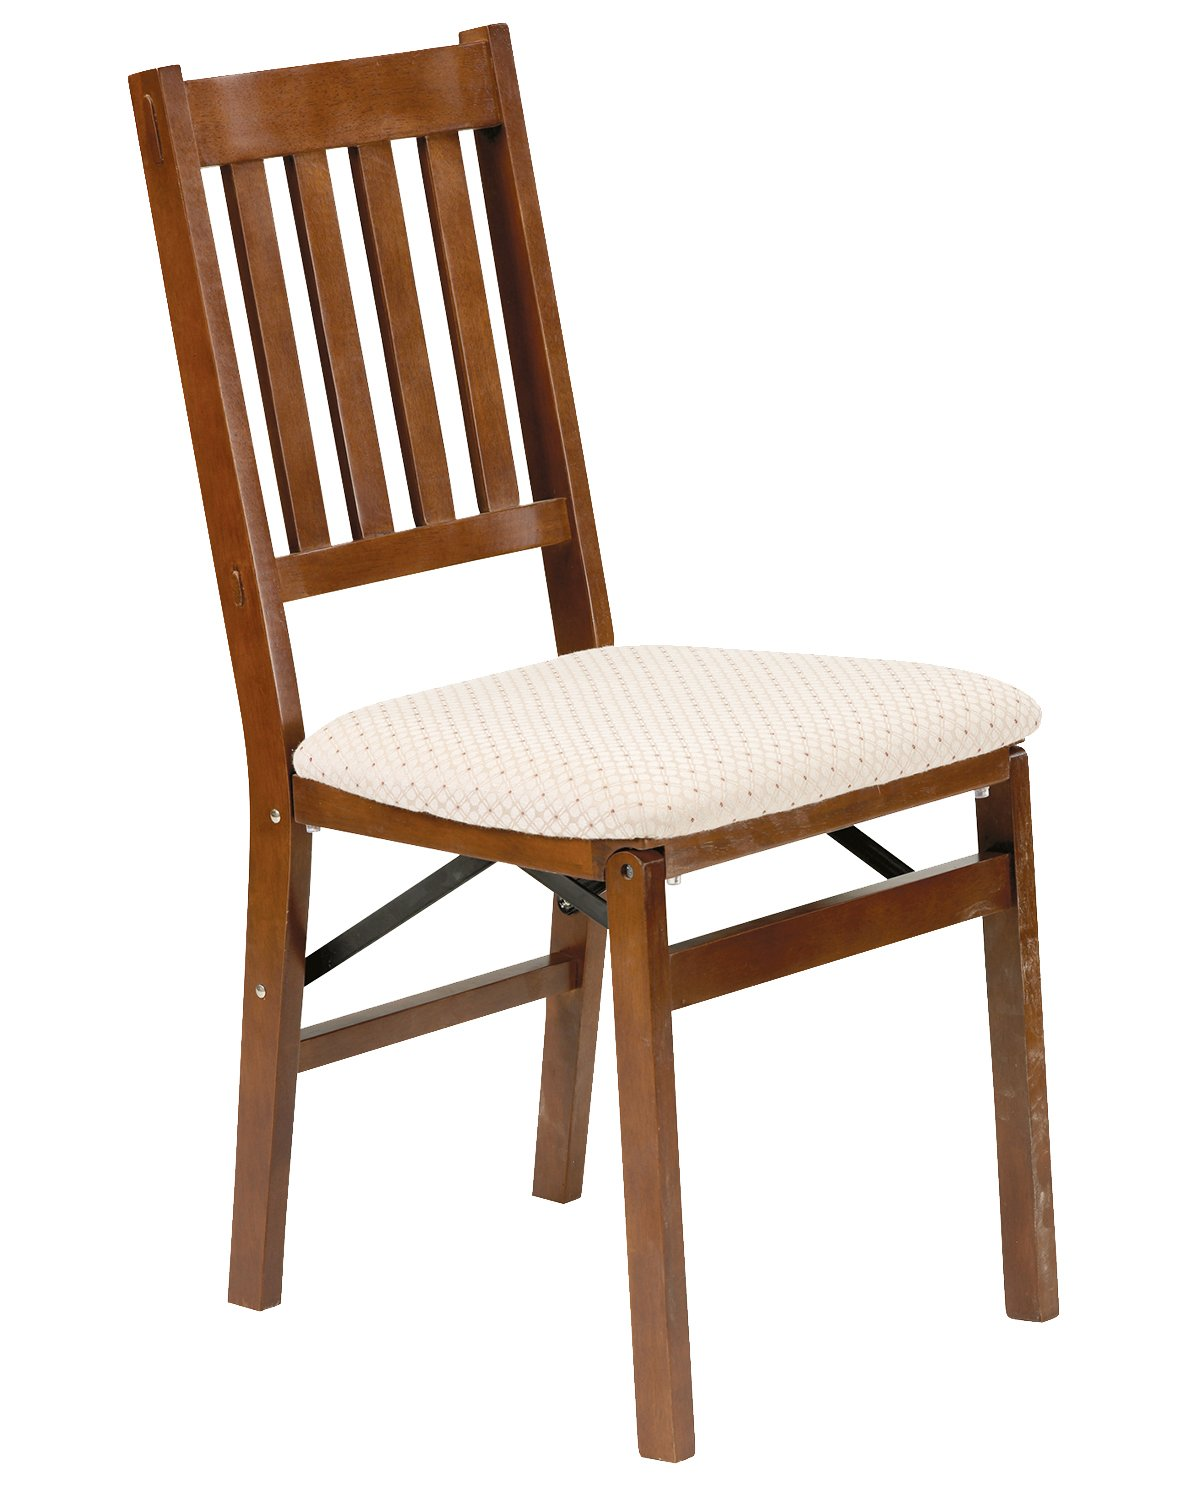 Stakmore Arts and Craft Folding Chair Finish, Set of 2, Fruitwood by MECO